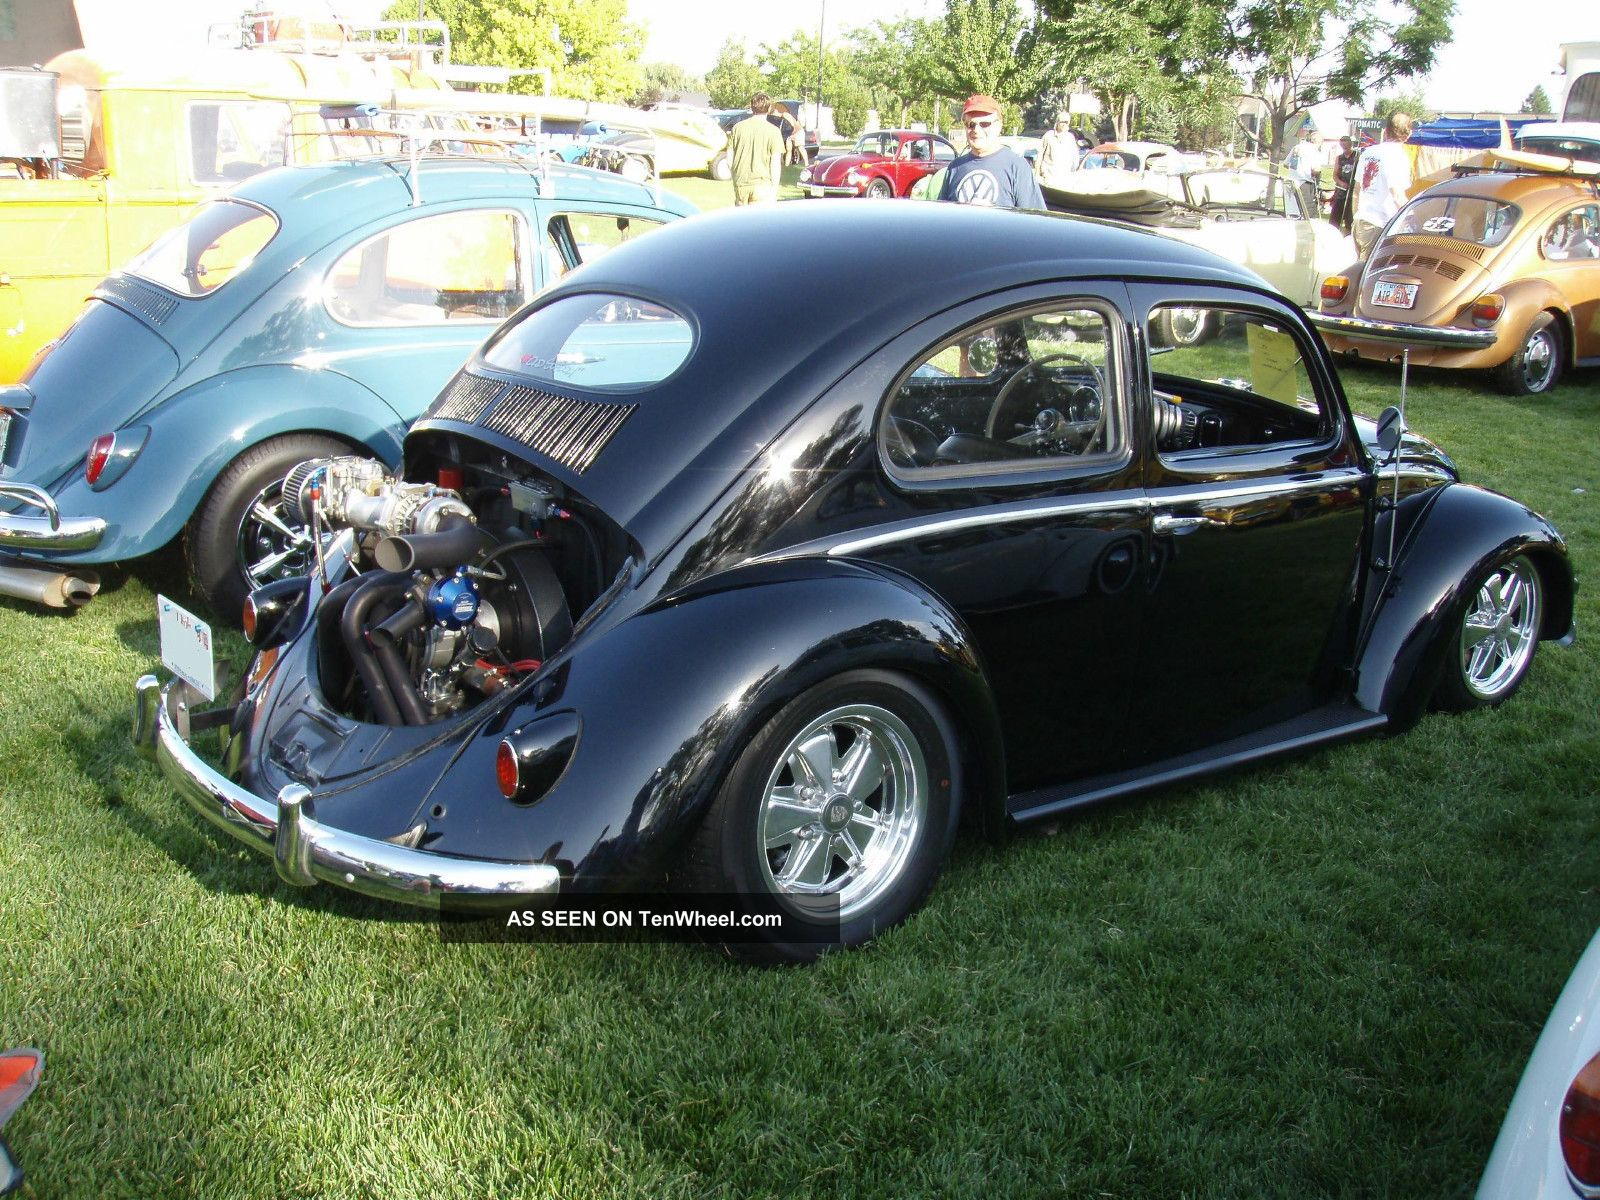 1957 vw beetle type 1 oval window turbo charged. Black Bedroom Furniture Sets. Home Design Ideas